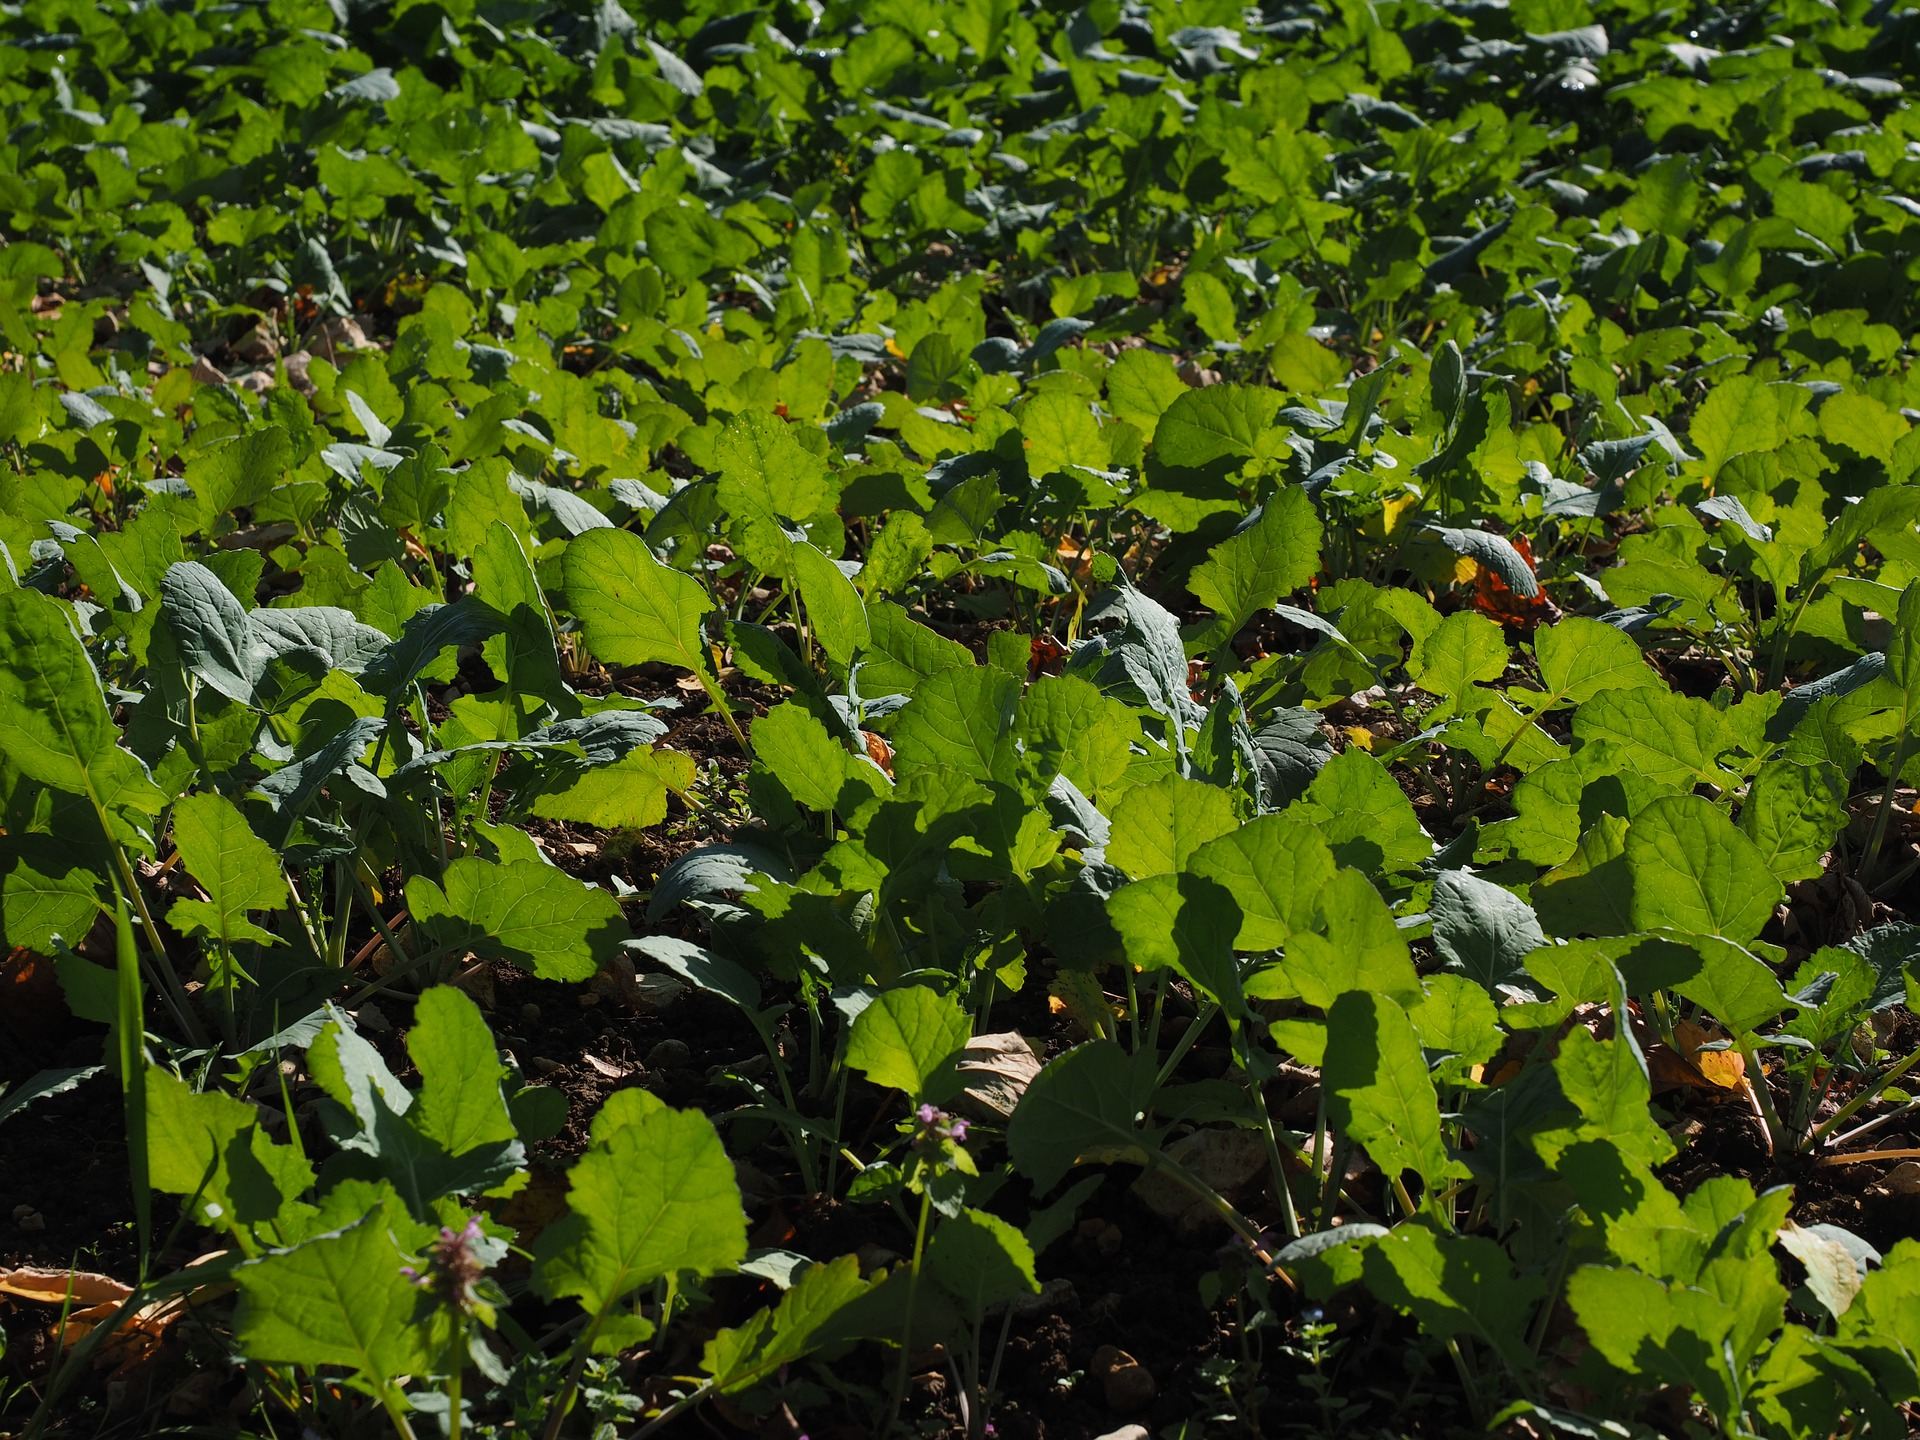 How to Use Green Manure to Improve Soil Fertility